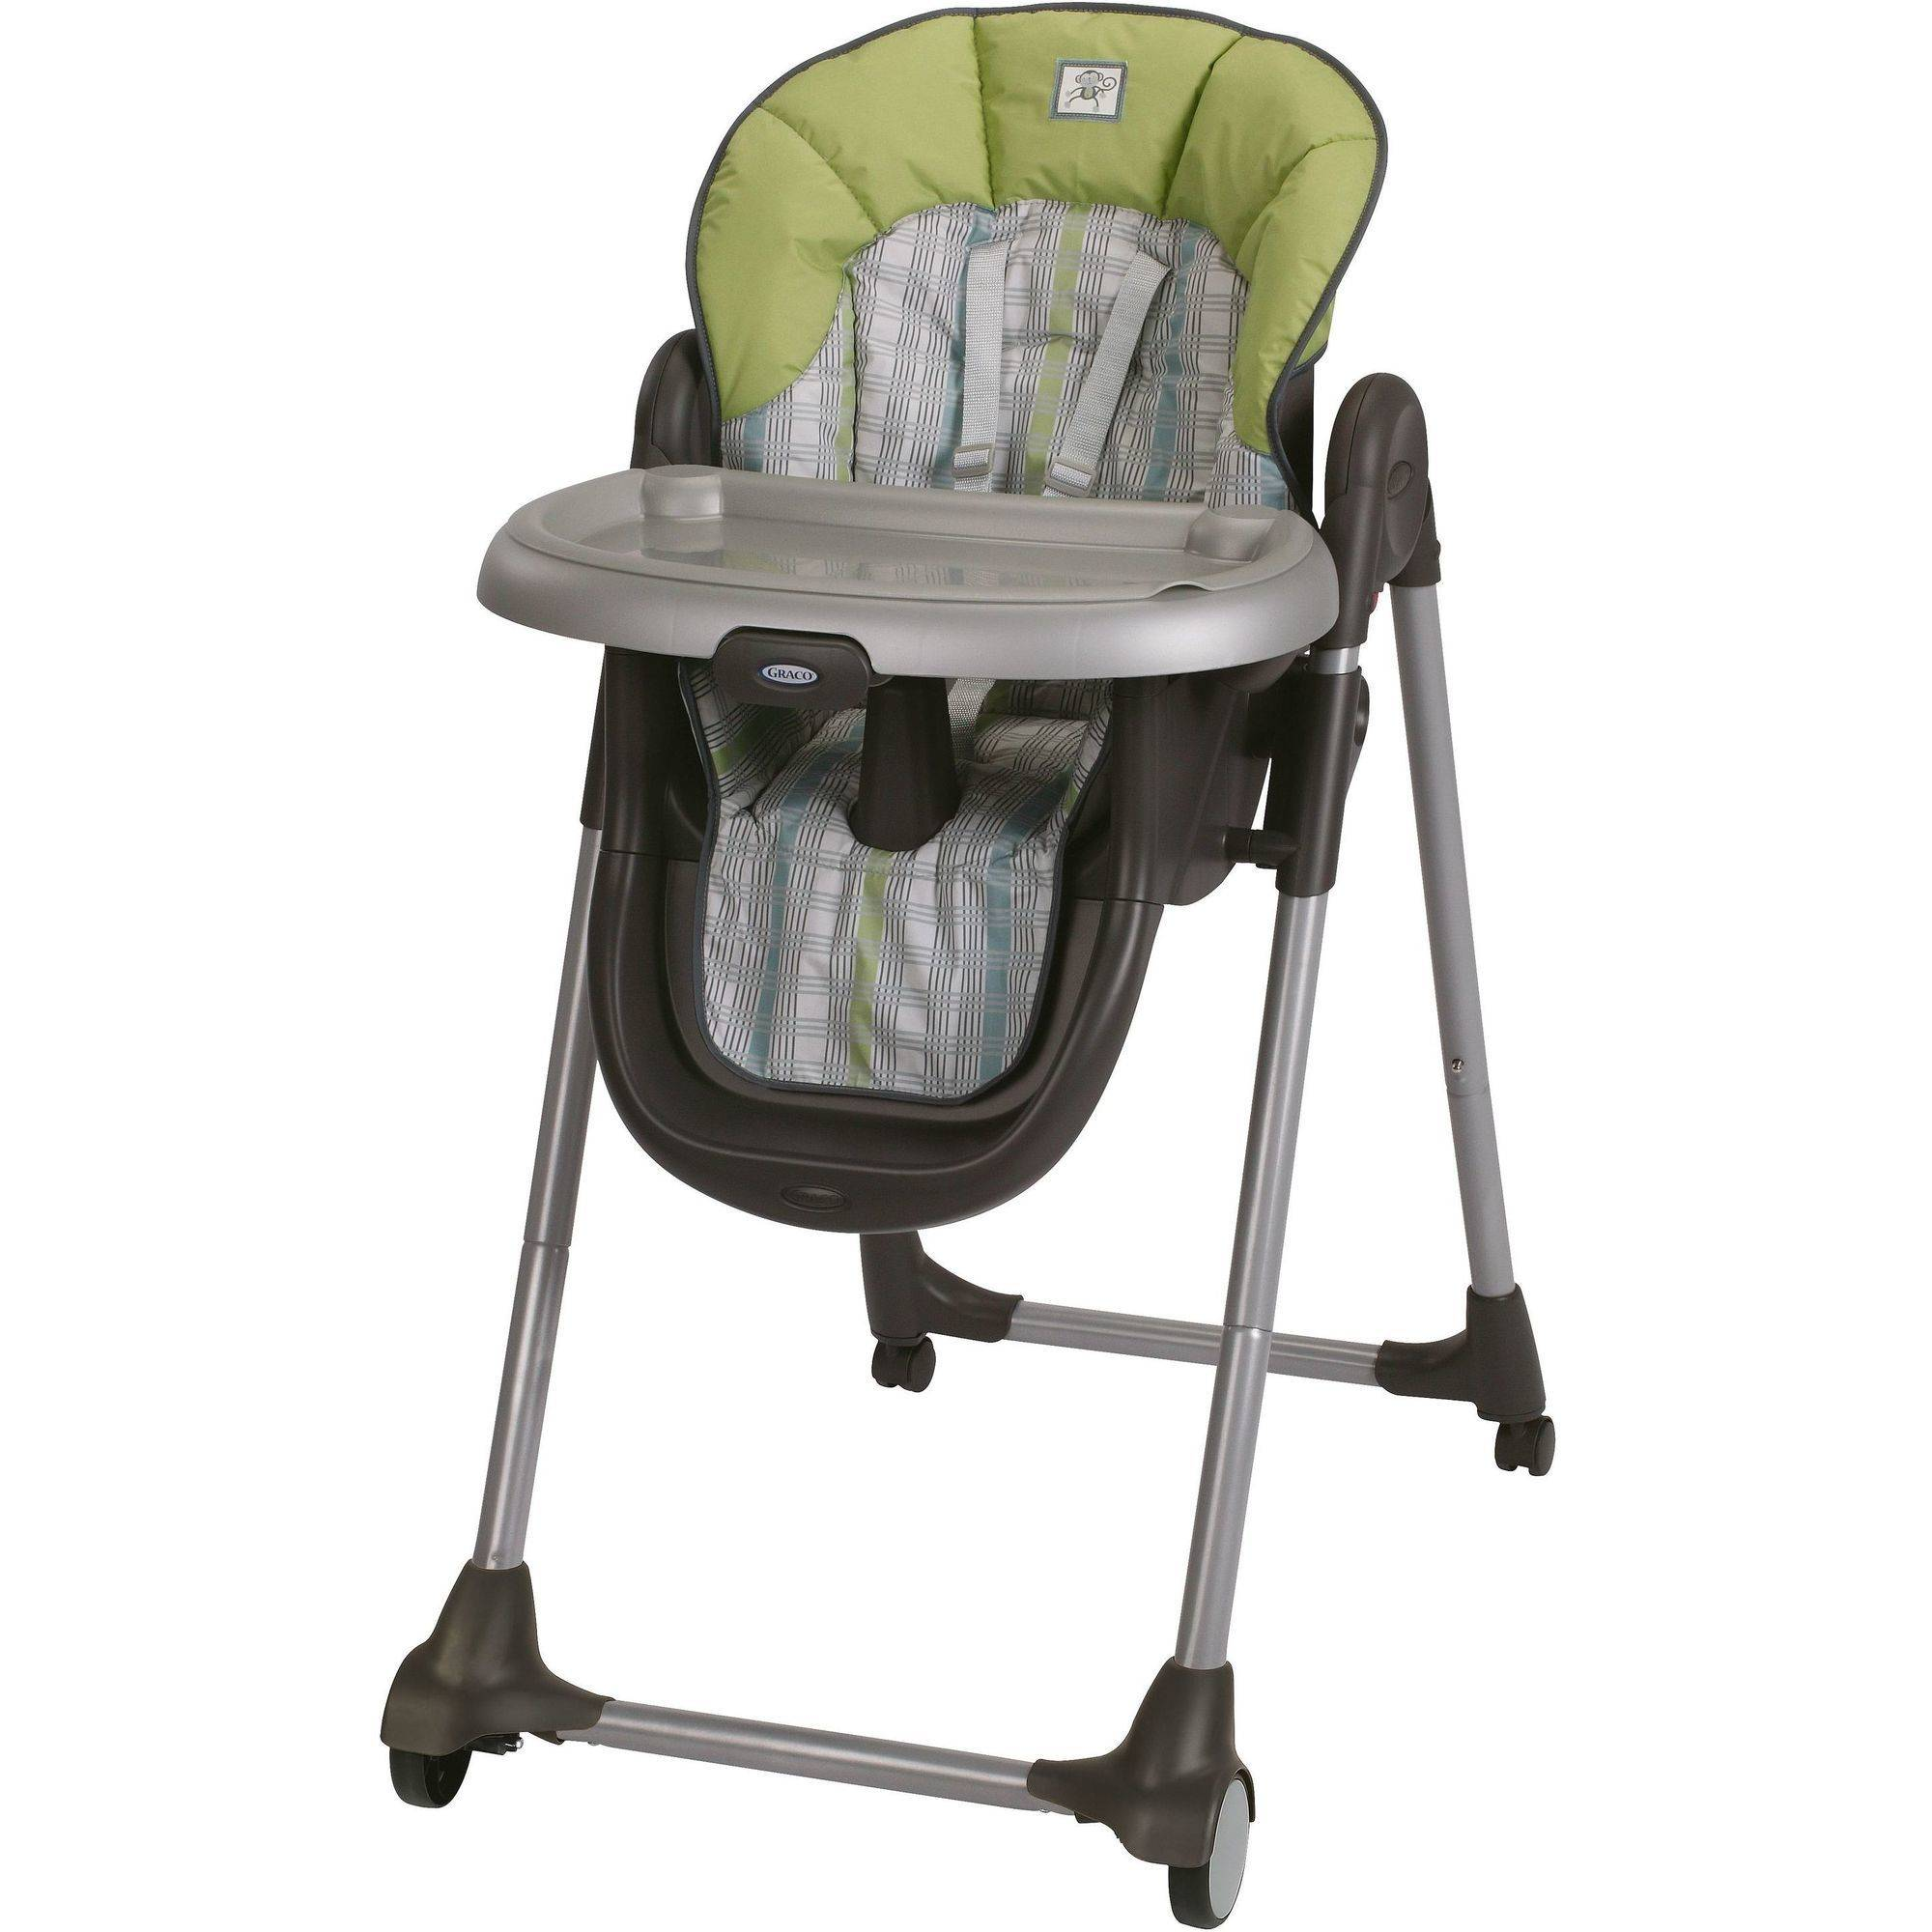 Graco Meal Time Baby High Chair, Rory